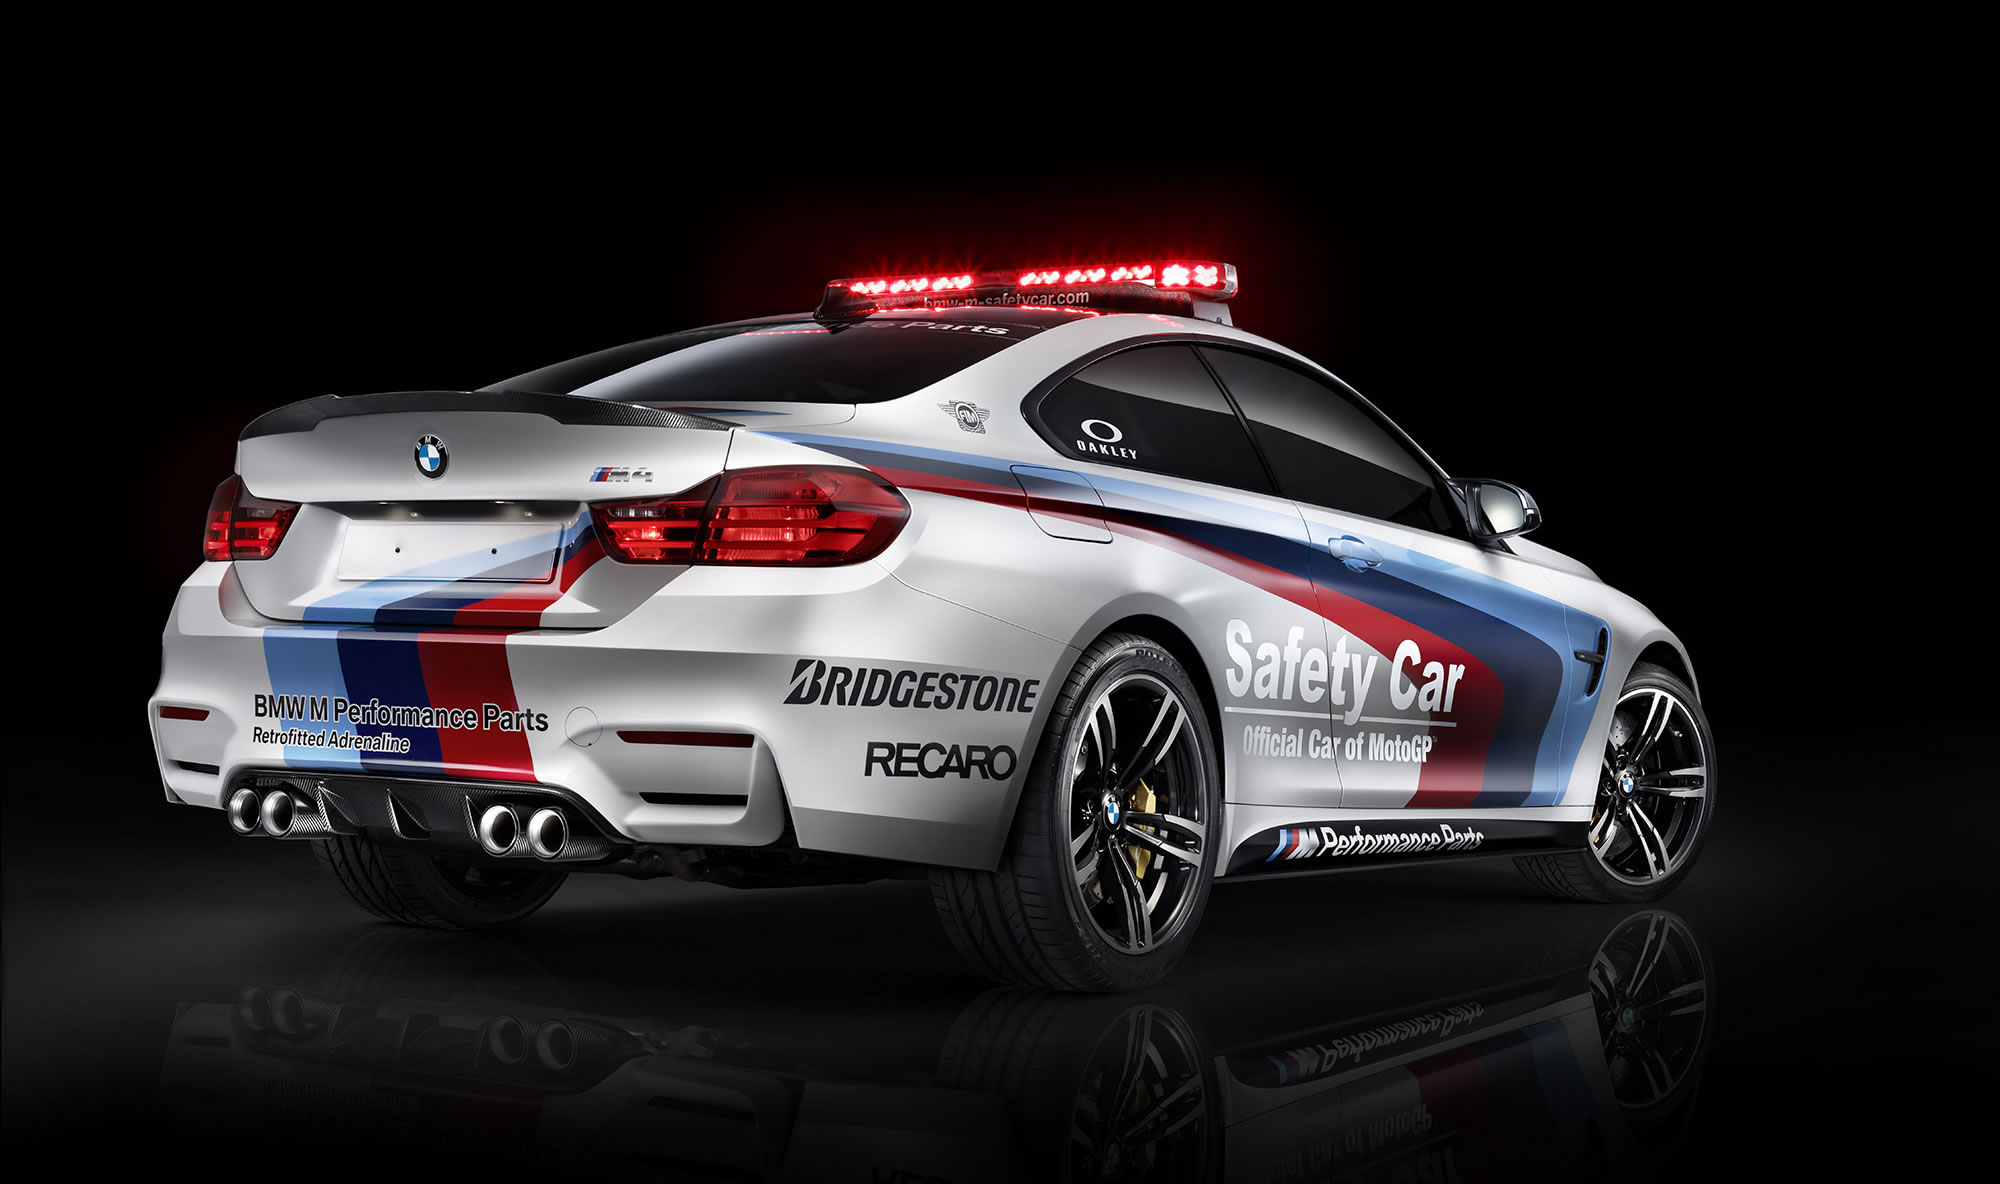 2014 bmw m4 coupe motogp safety car photos specs and review rs. Black Bedroom Furniture Sets. Home Design Ideas